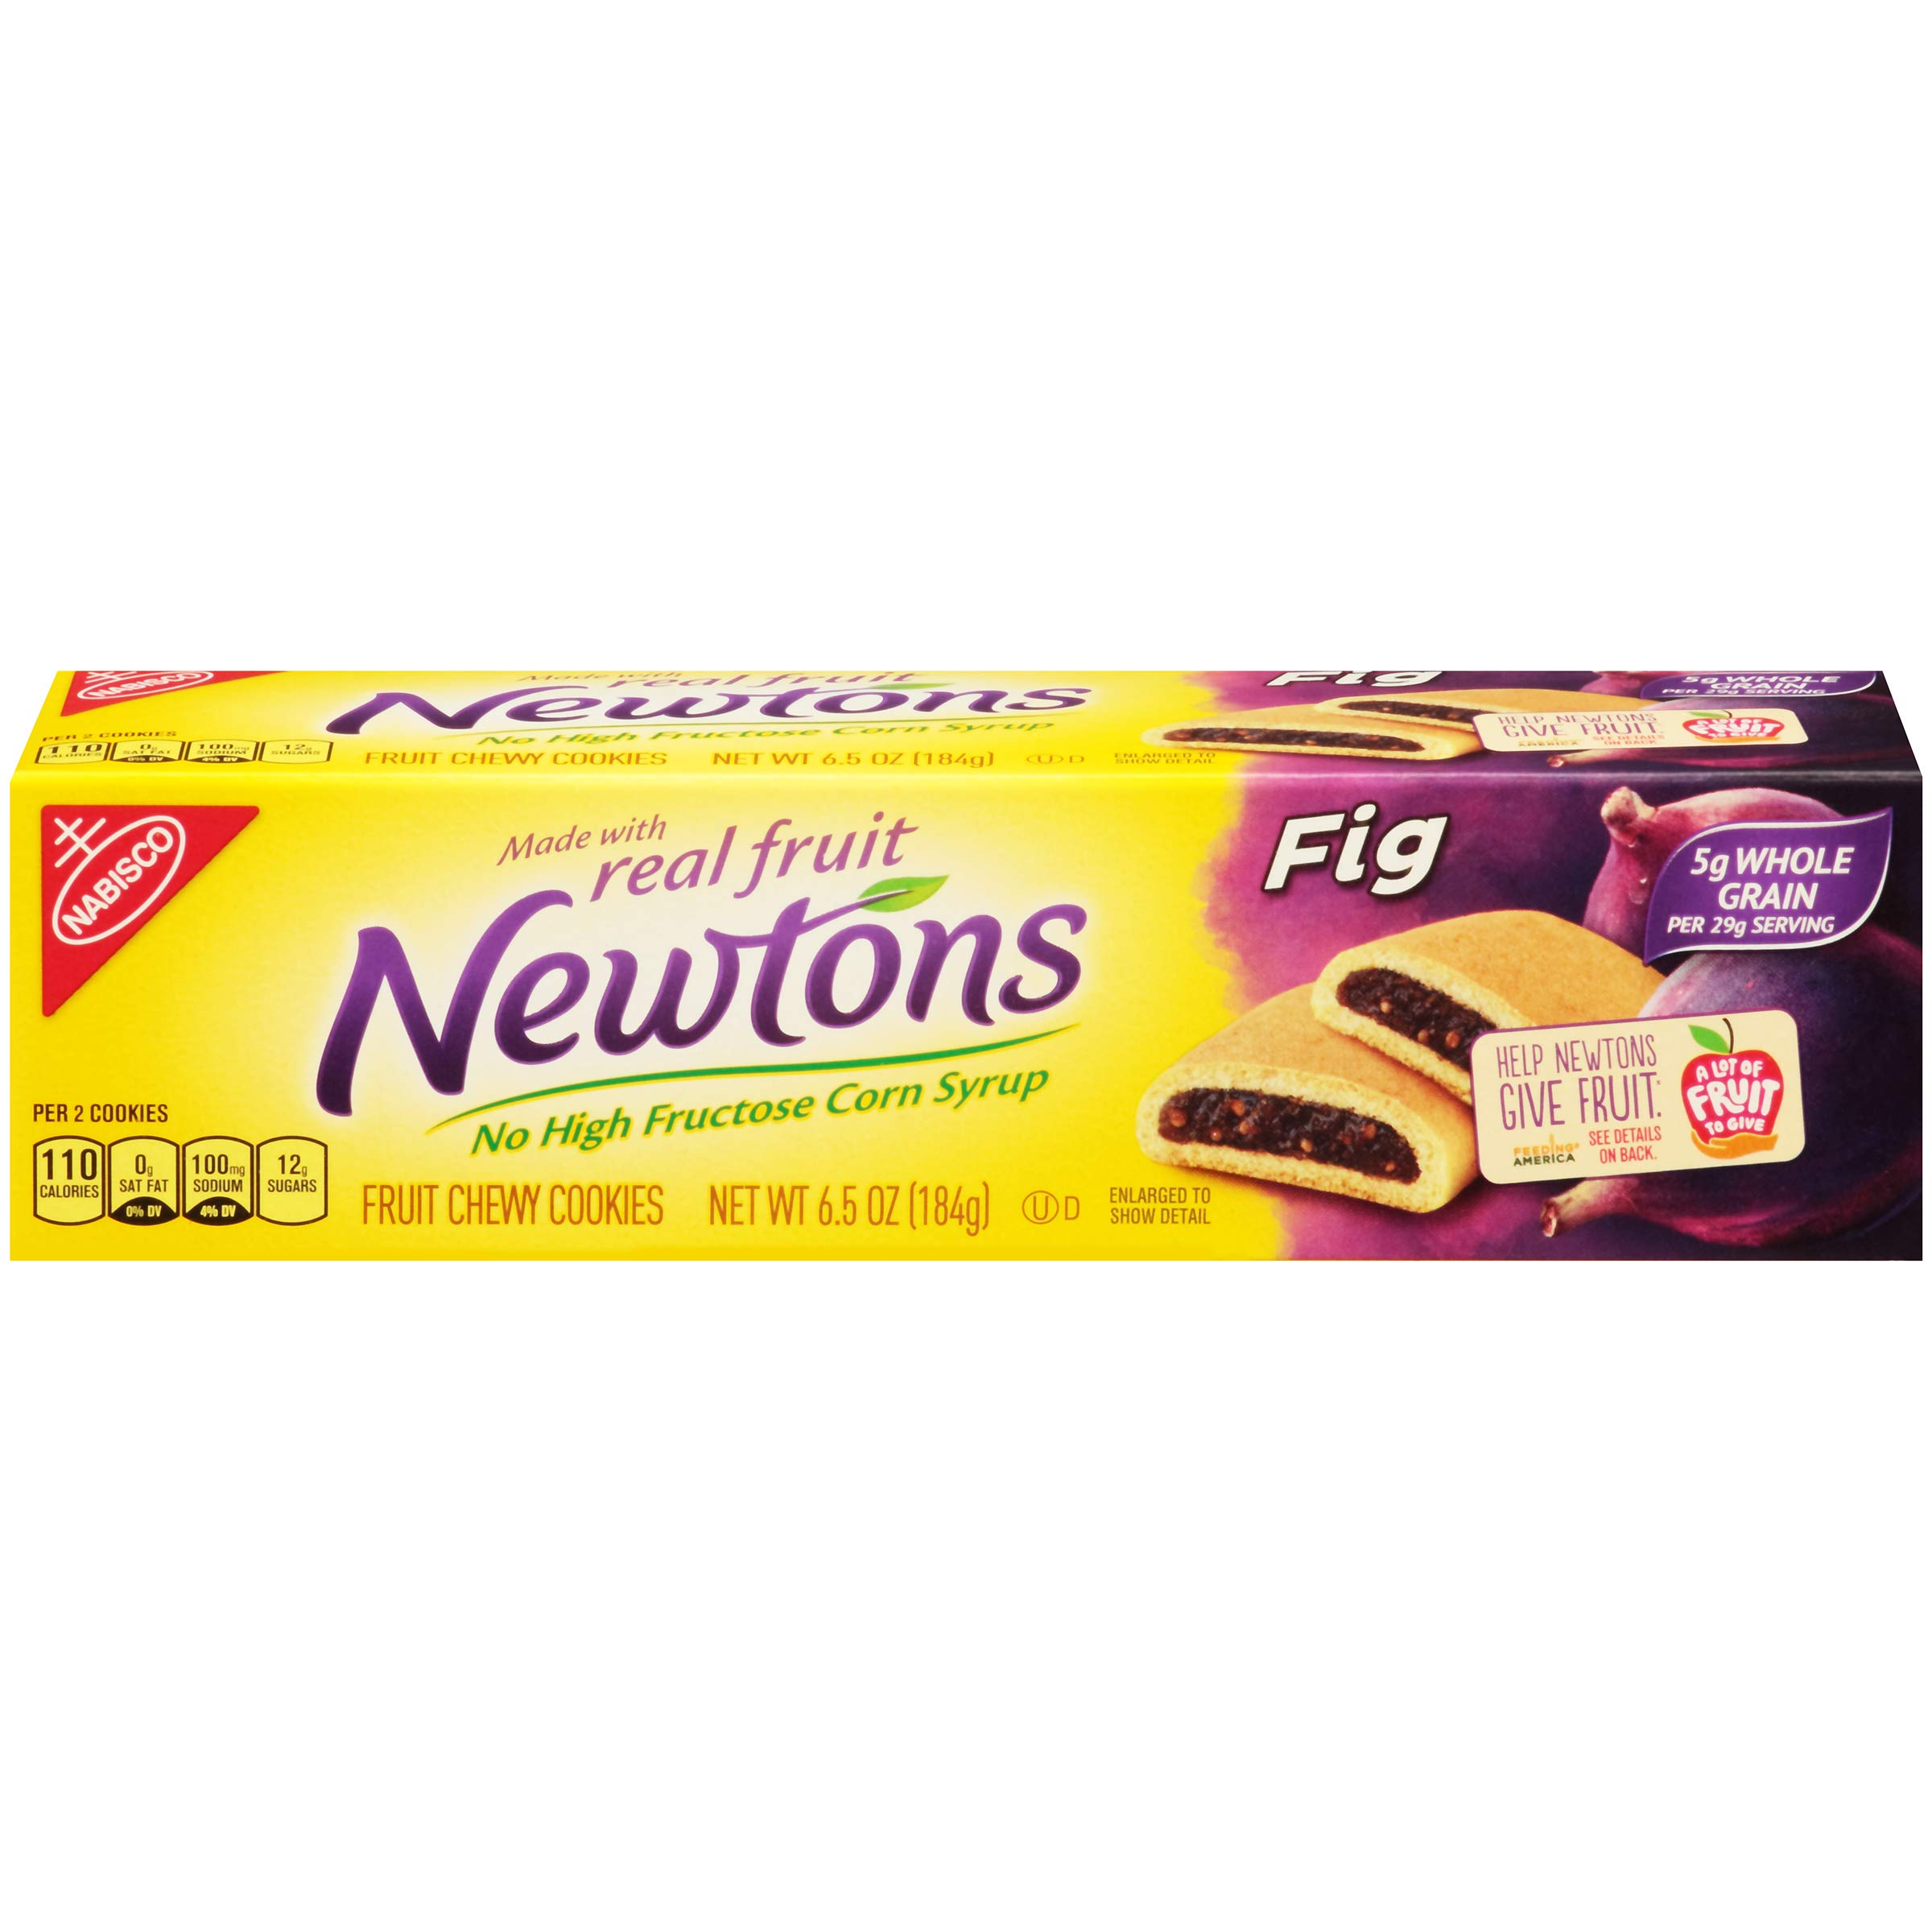 Newtons Fig Original Fruit Chewy Cookies, 6.5 Ounce by Newtons (Image #1)